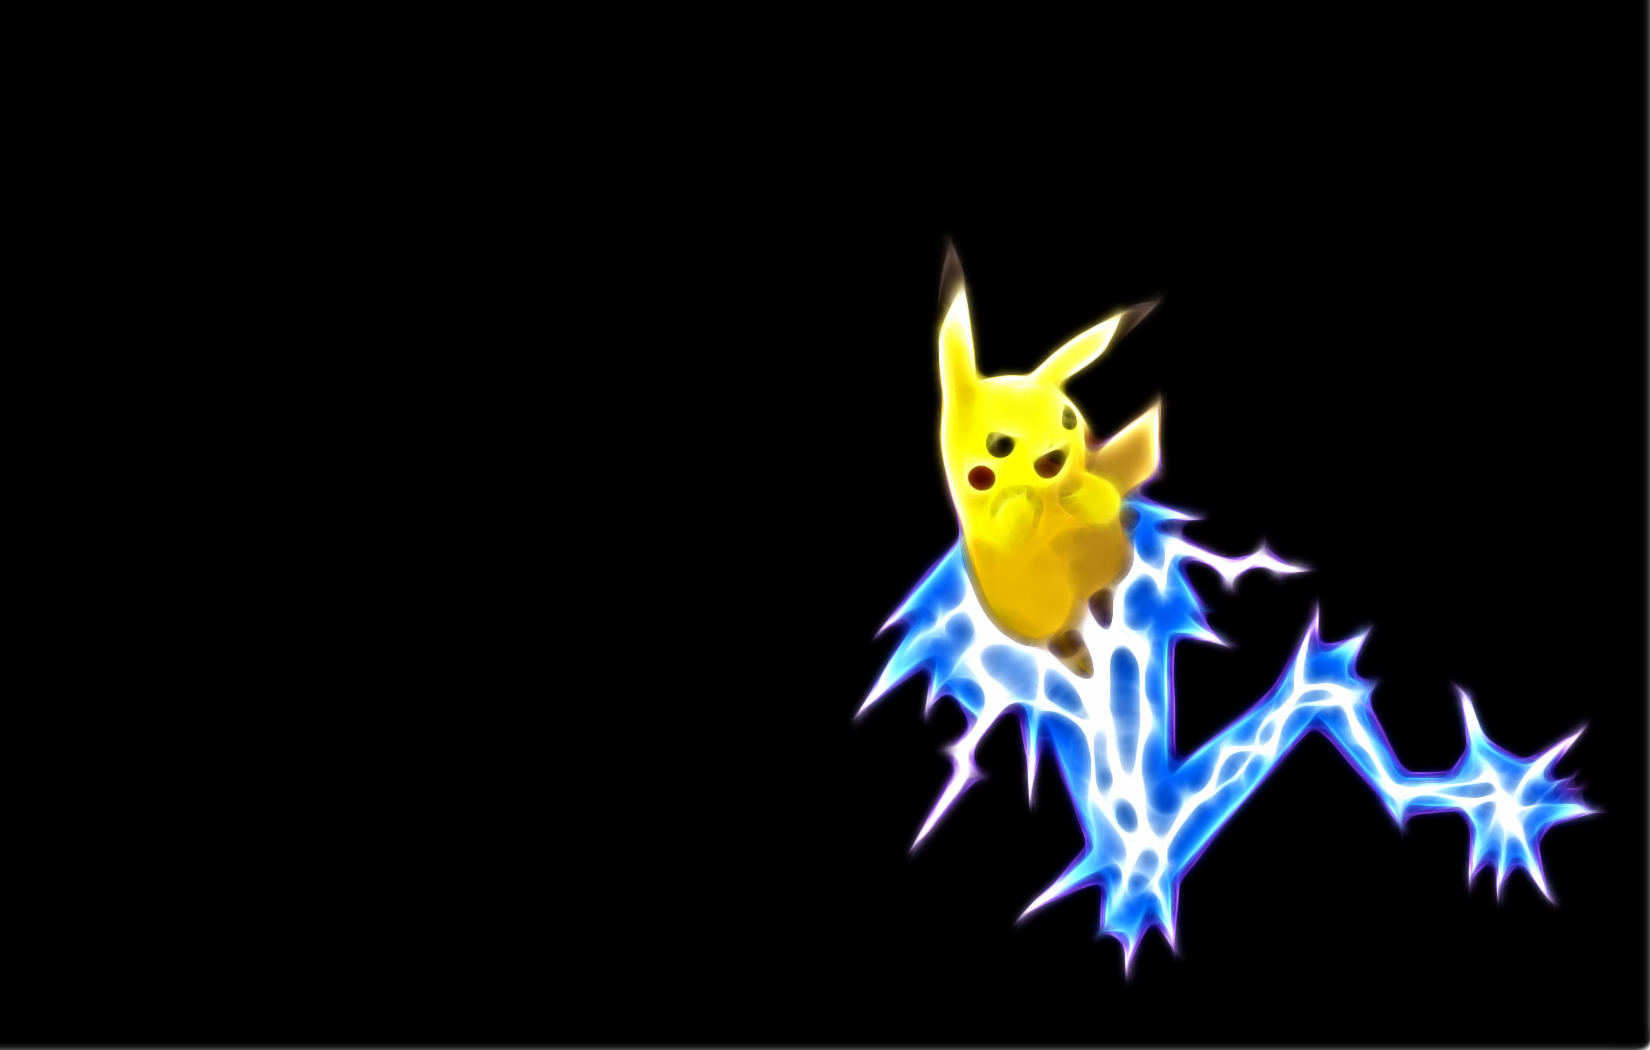 Pokemon Pikachu Wallpaper 1650x1050 Pokemon Pikachu Black 1650x1050